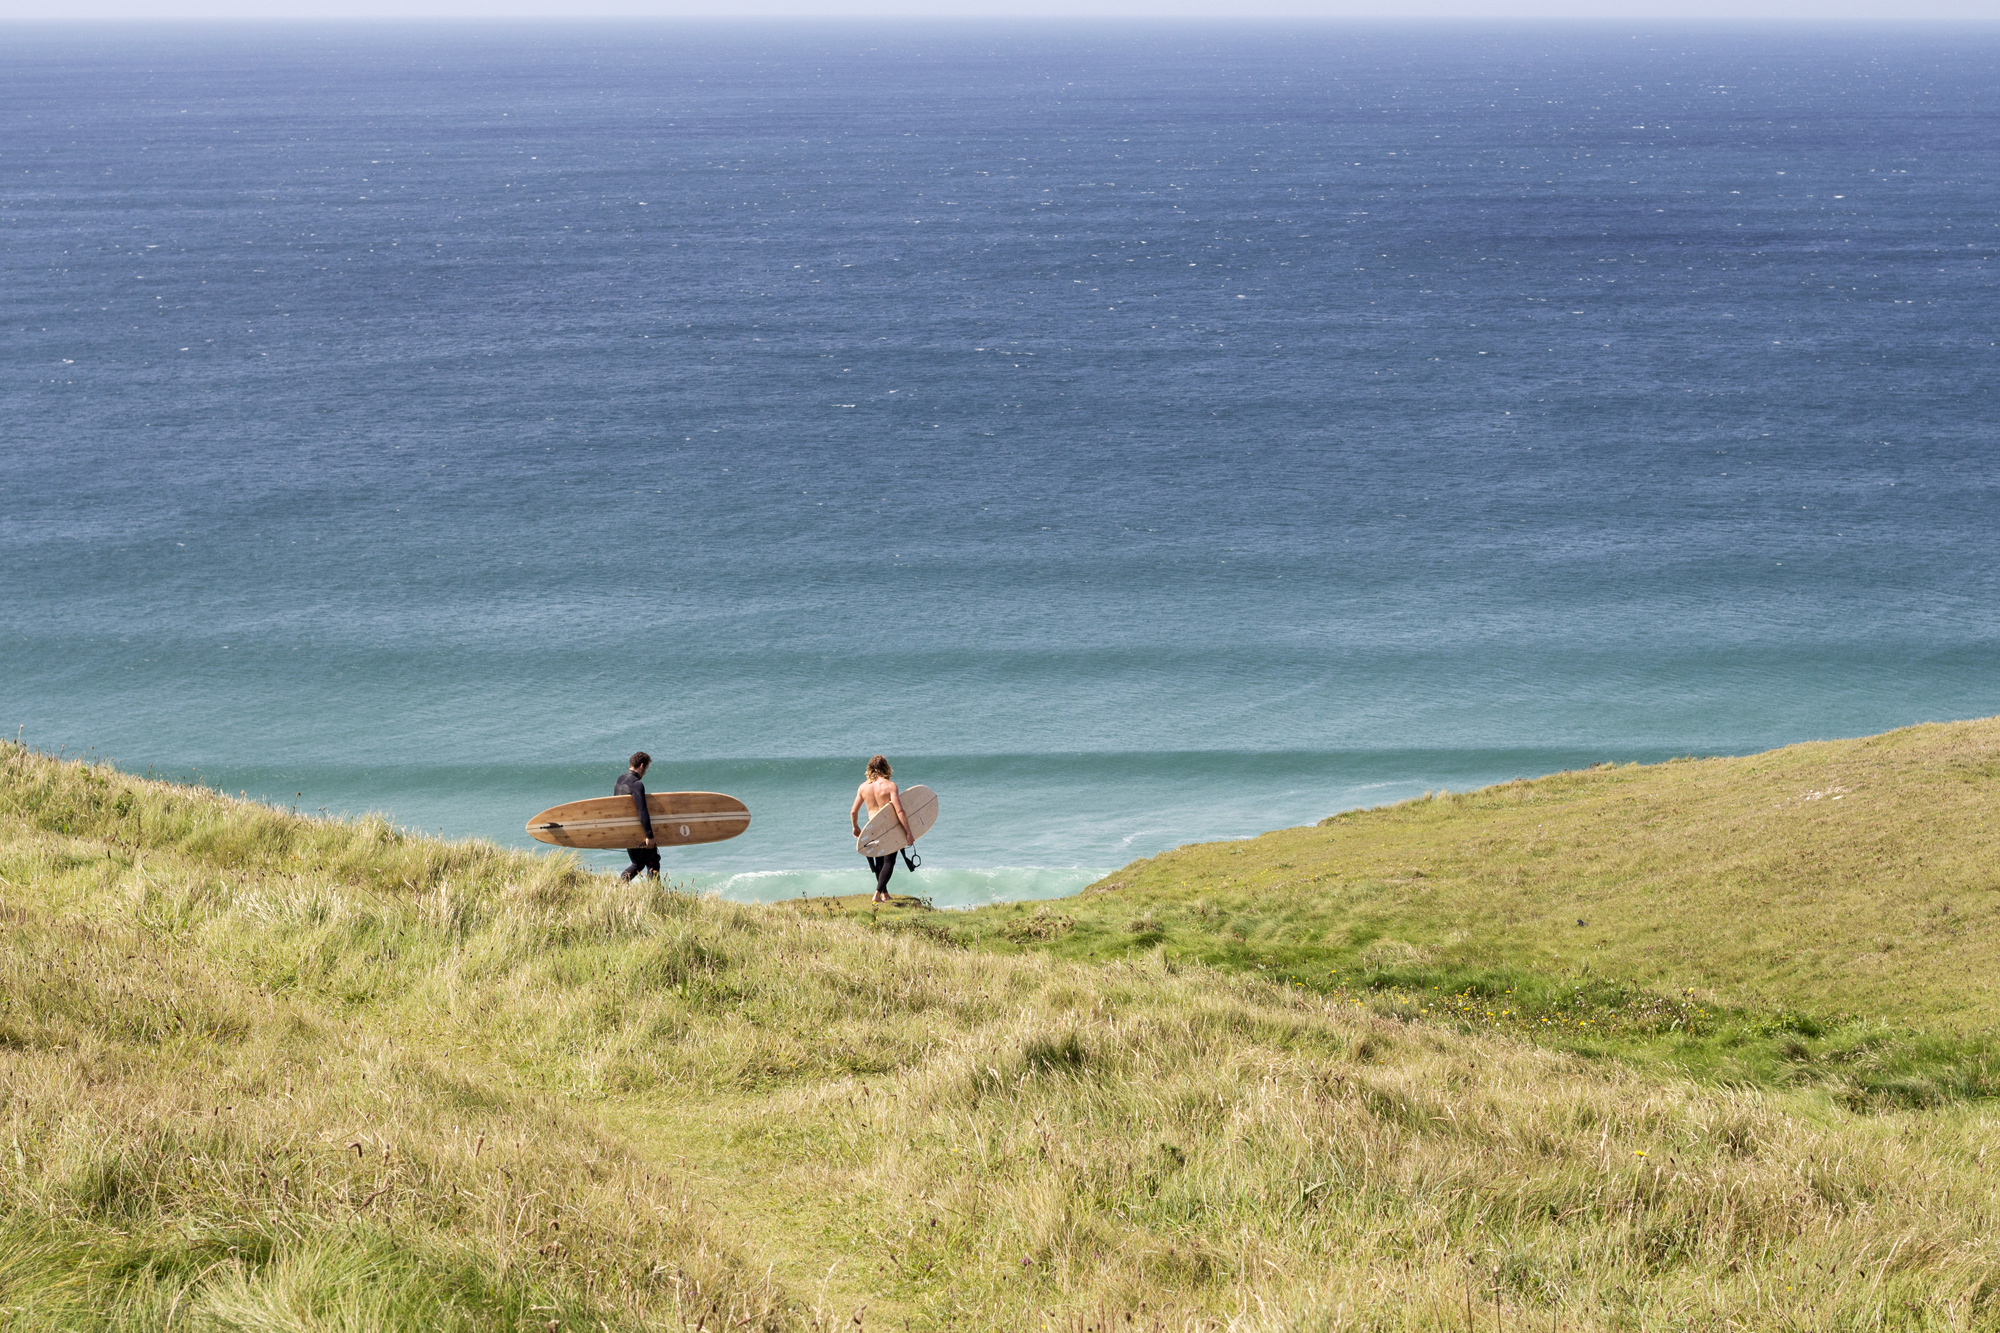 01_Otter_Surfboards_Summer_2017_clifftop_surf_check.jpg